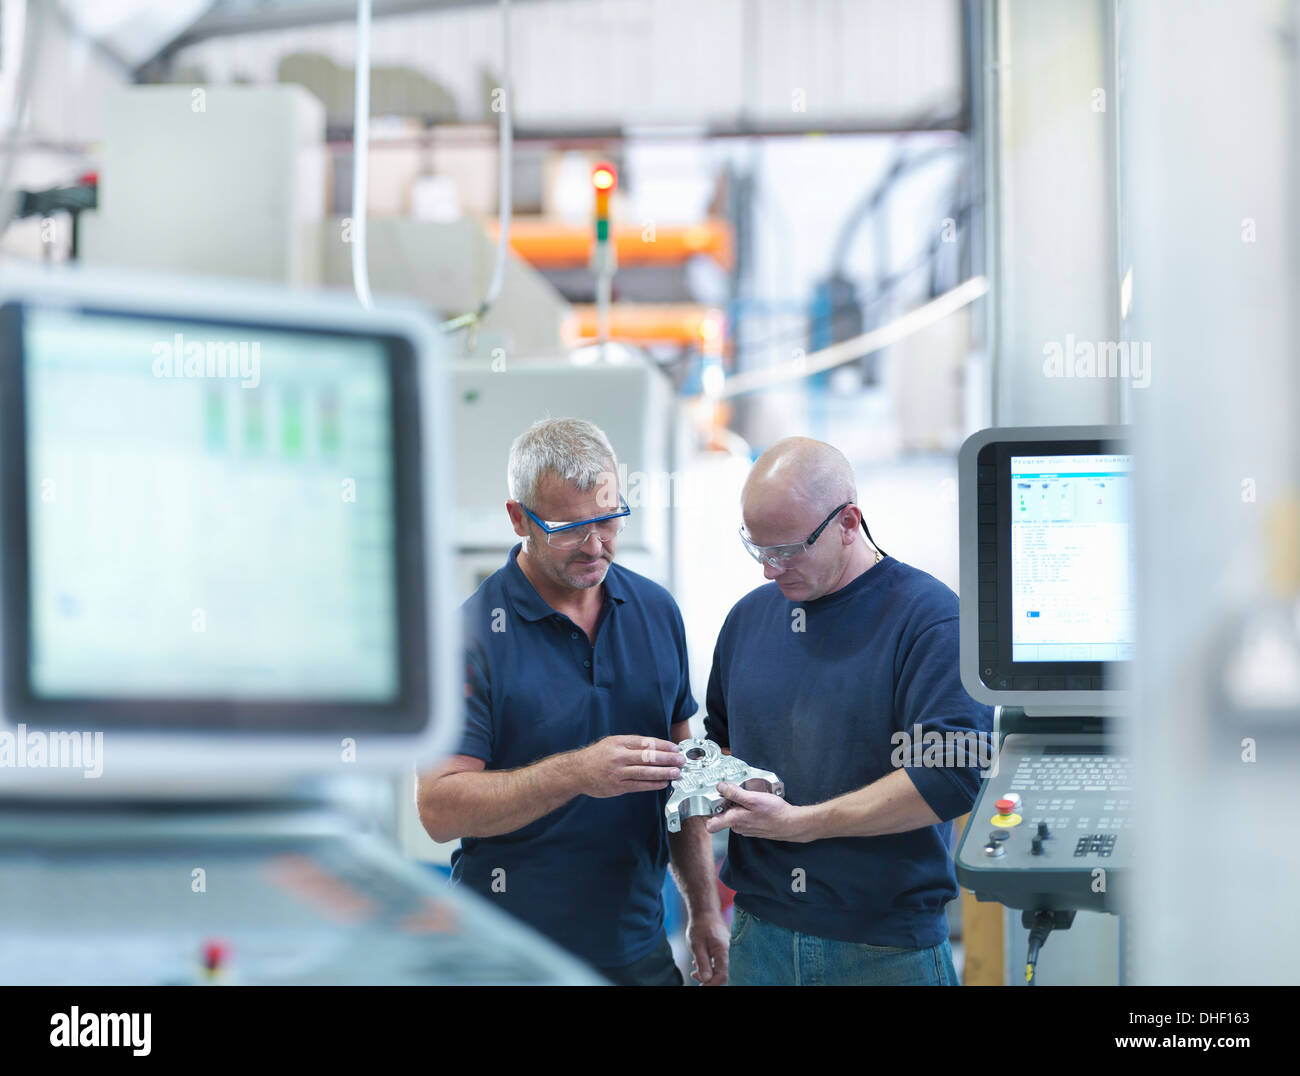 Engineers inspecting complex metal component in factory Photo Stock